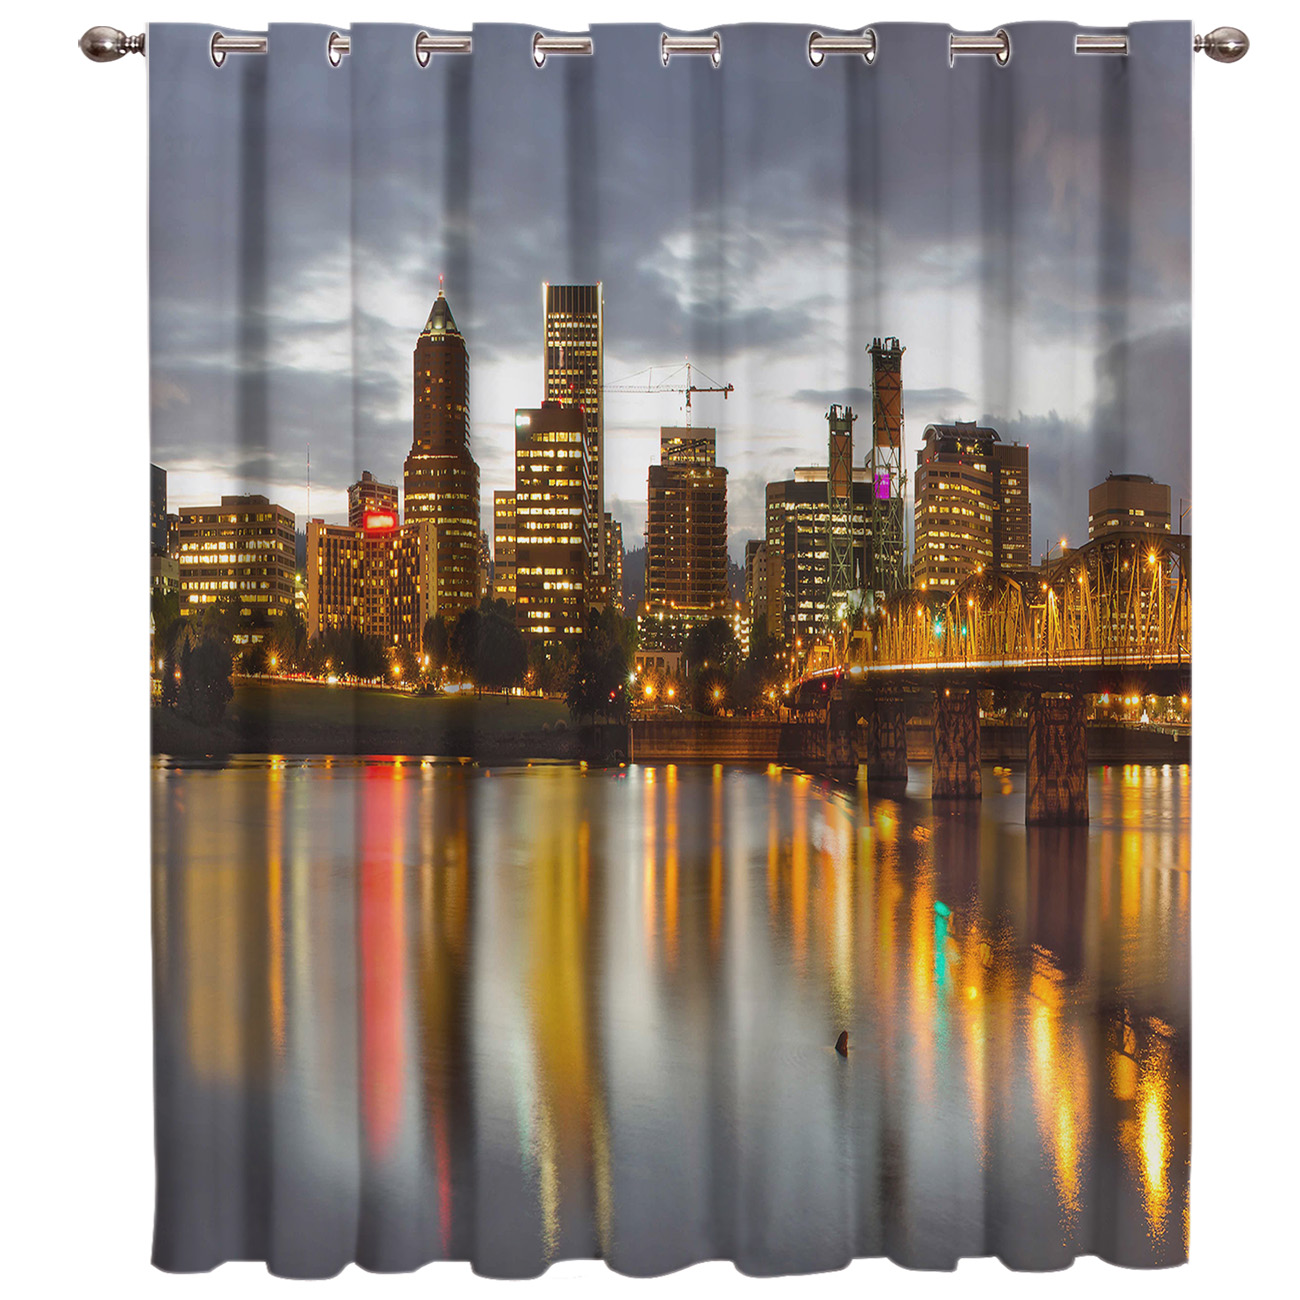 Night City New York Window Treatments Curtains Valance Window Curtains Dark Curtain Rod Outdoor Kitchen Indoor Fabric Swag Kids